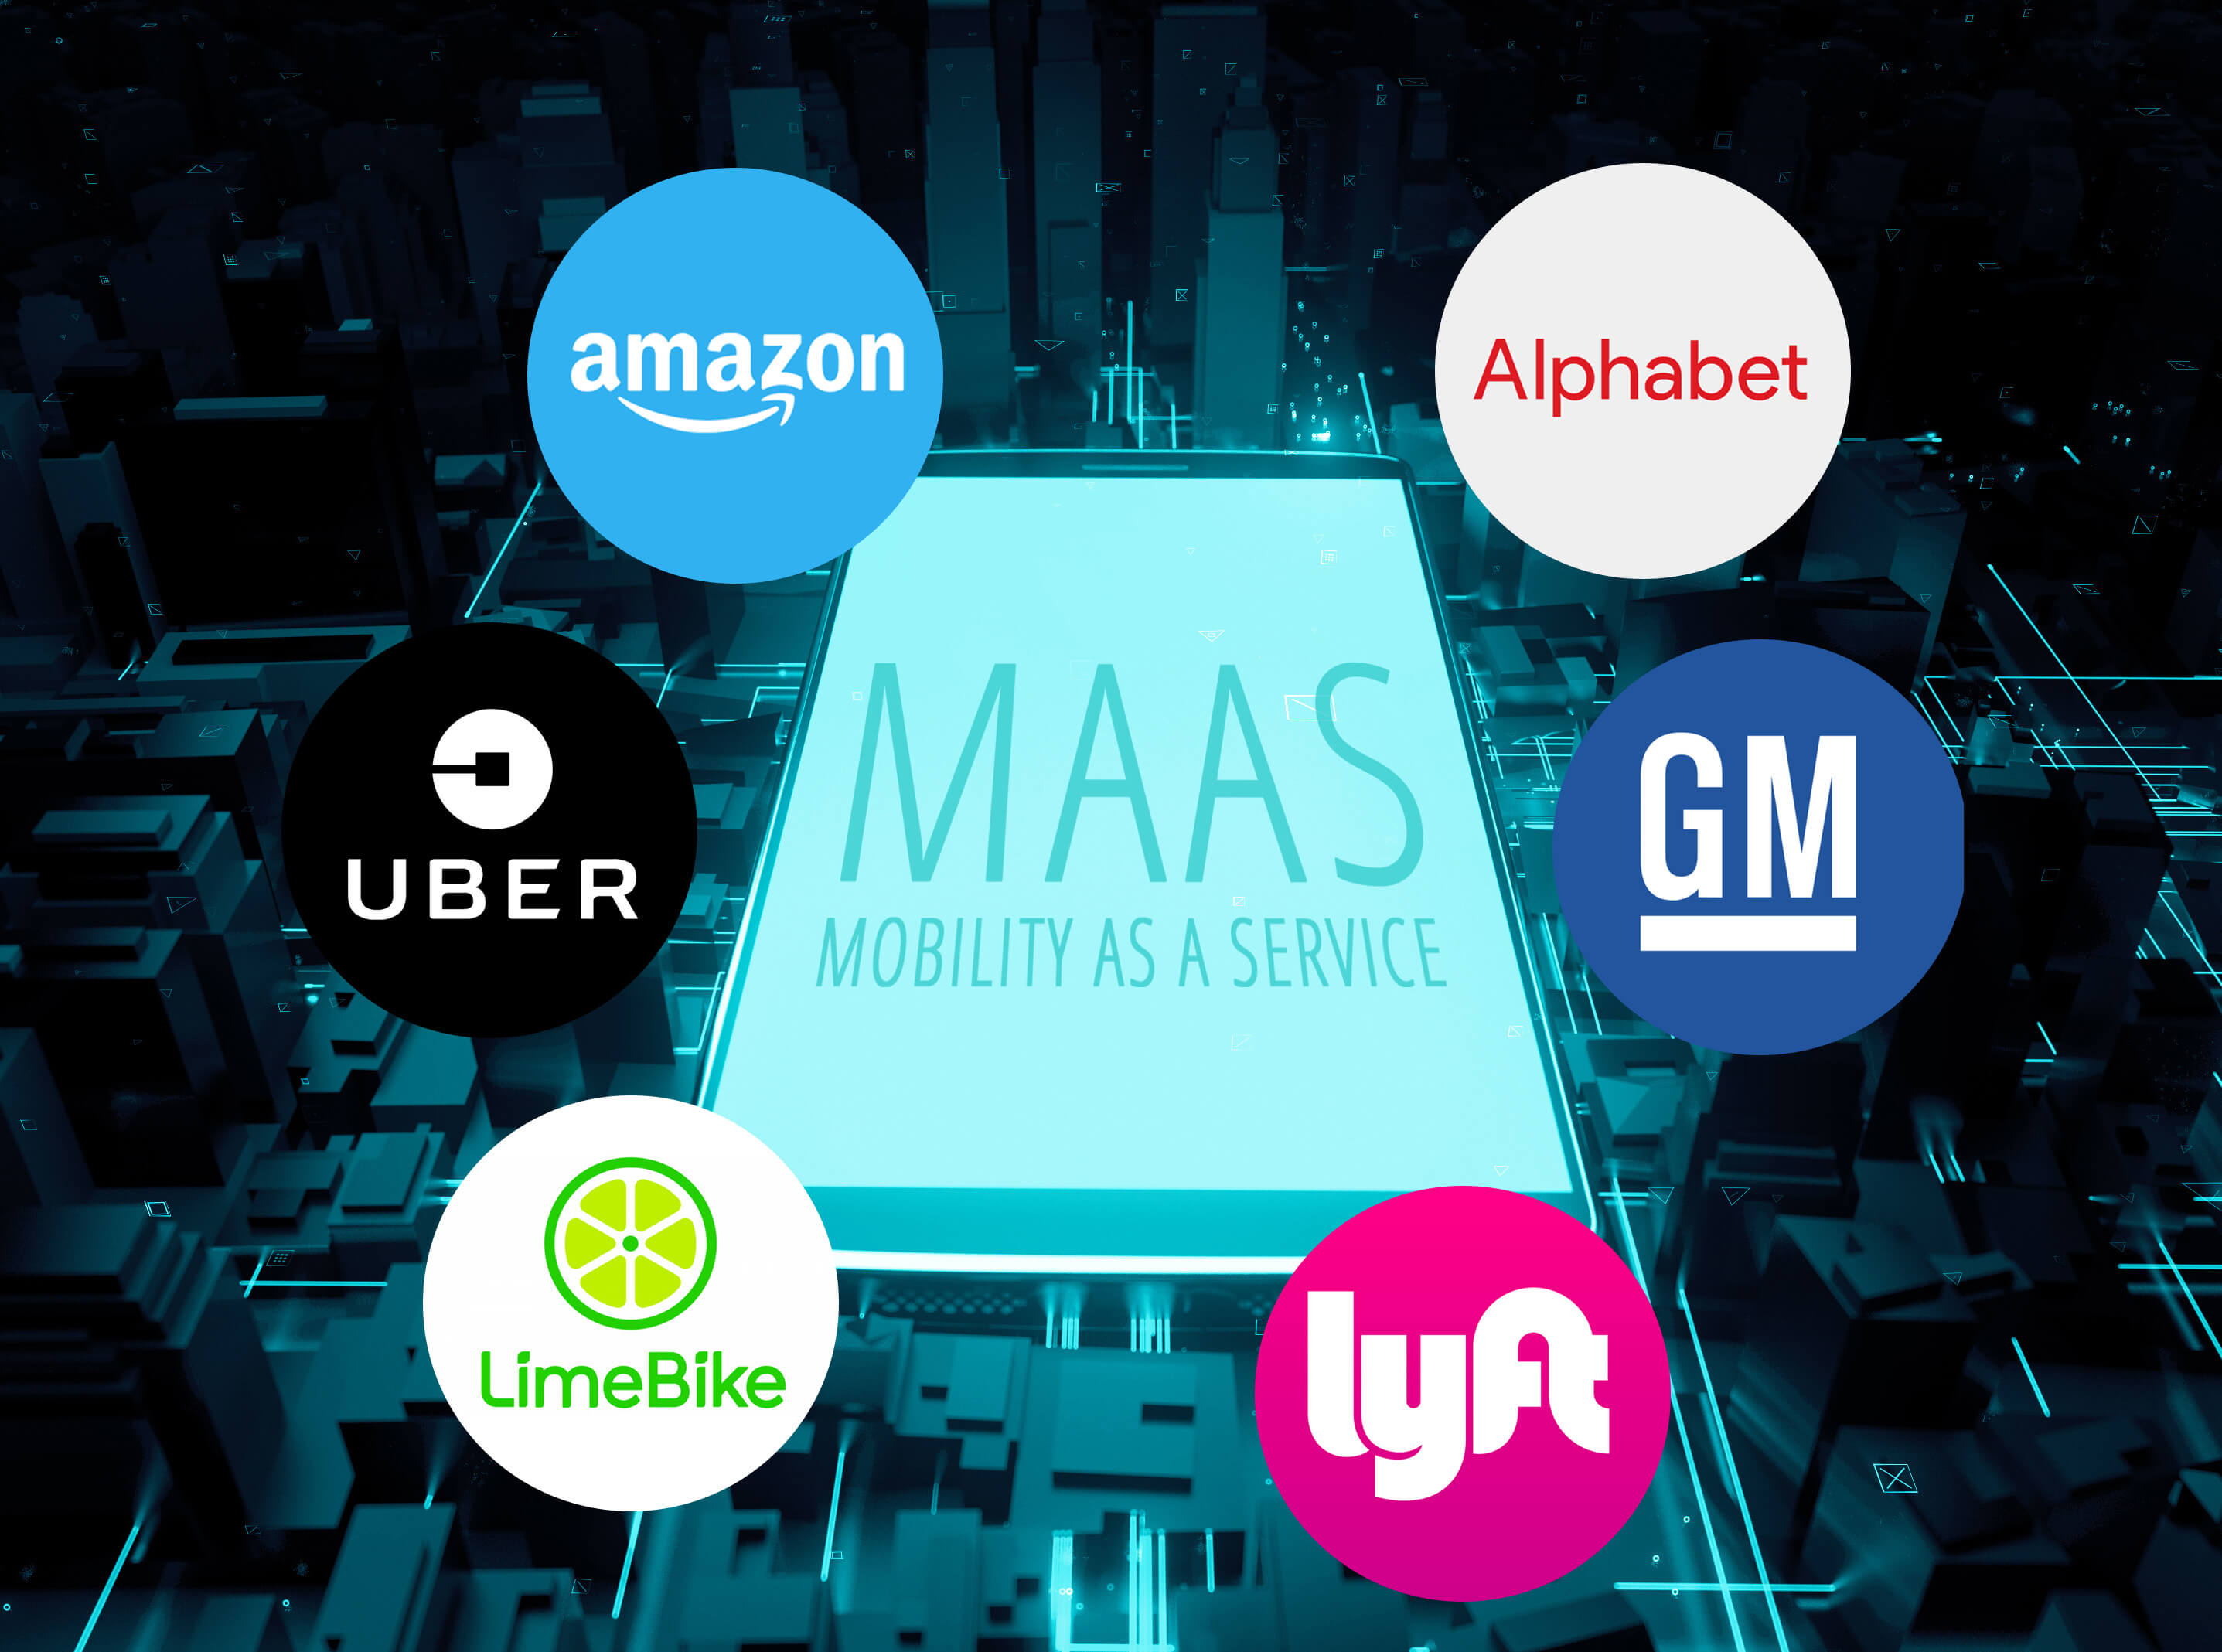 Mobility-as-a-service vendors Uber, Alphabet, Amazon, LimeBike, Lyft and GM